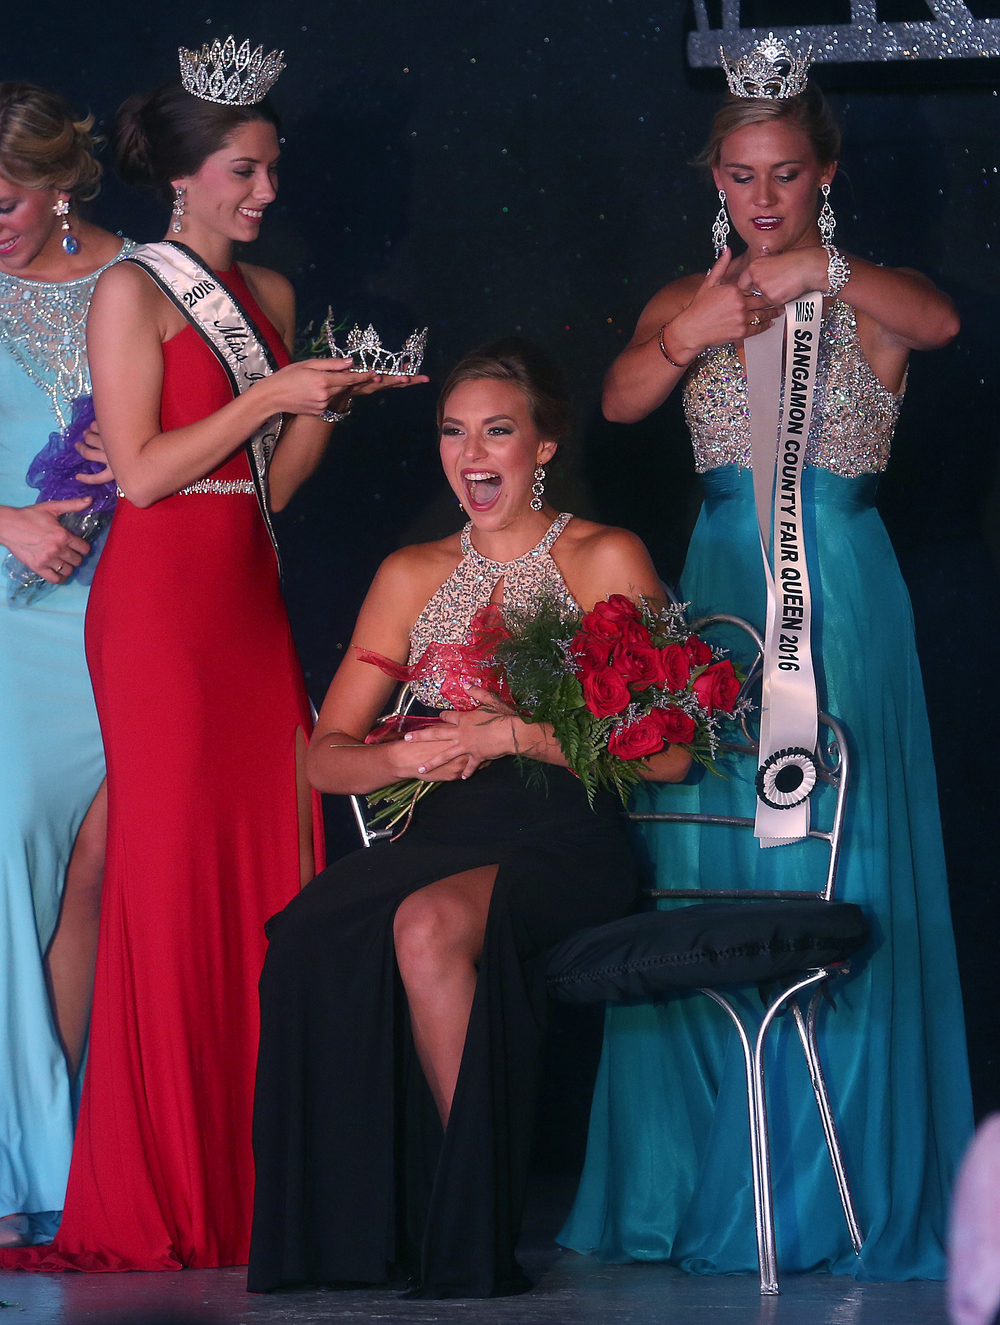 Kerby Ingram reacts while seated on her throne moments before being crowned. At left is 2016 Miss Illinois County Fair Queen Abby Foster of Danville. At right with sash is 2015 Sangamon County Fair Queen Megan Urbas. David Spencer/The State Journal-Register